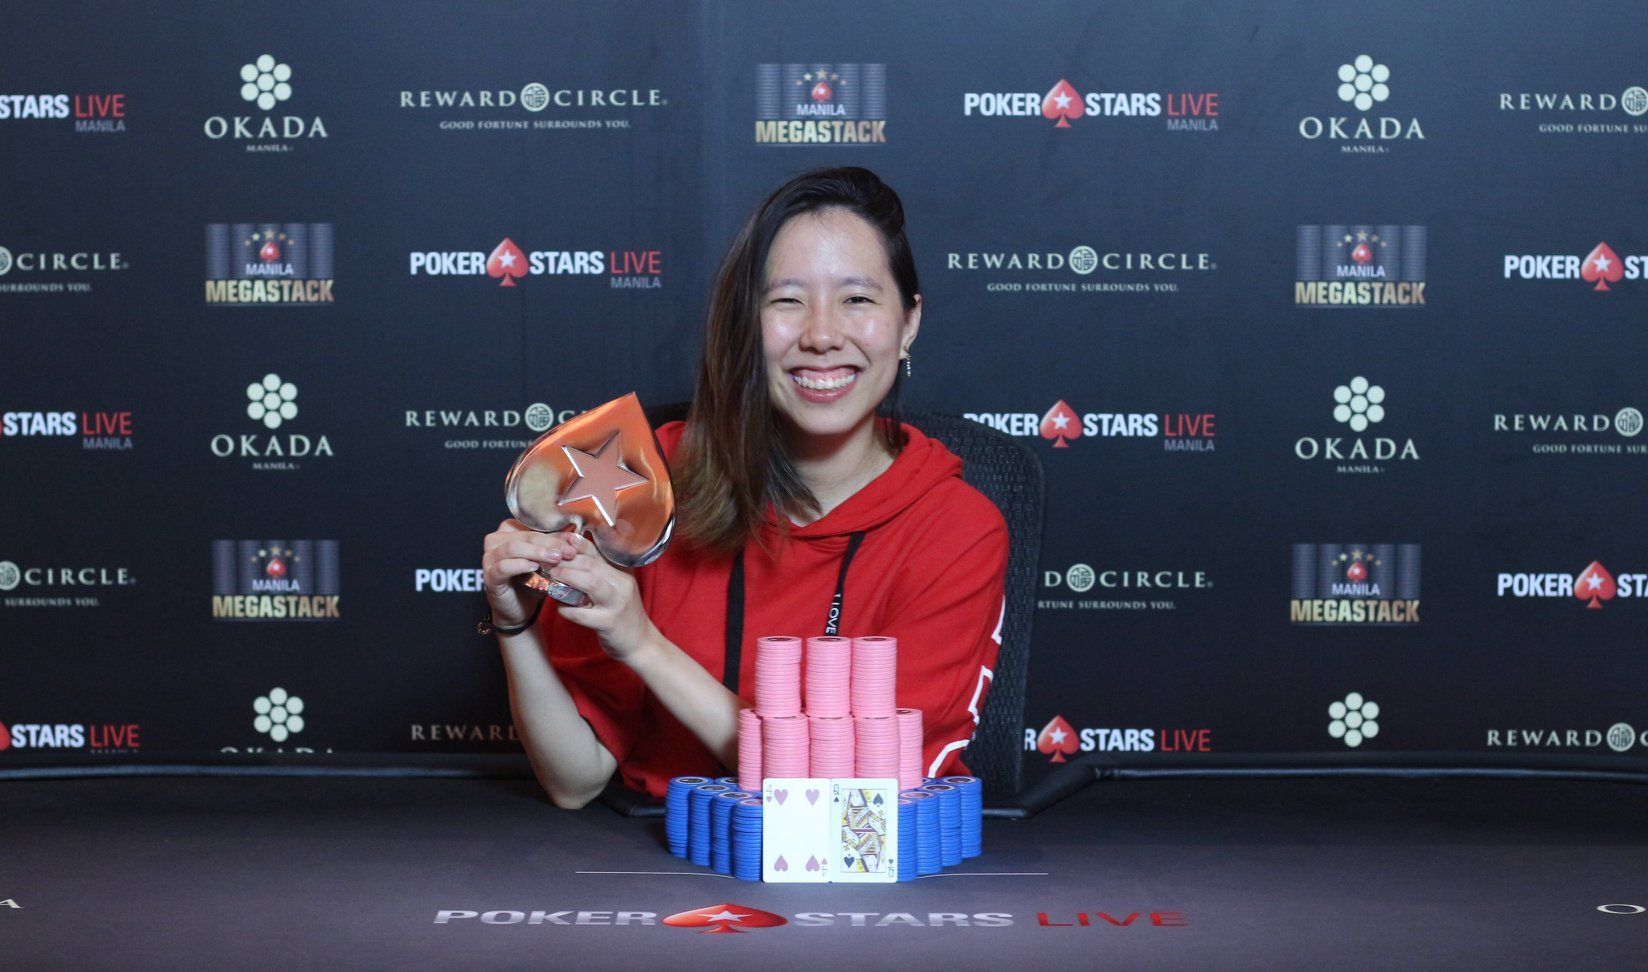 Manila Megastack: Lisa Tan Meiling becomes first woman to win the Main Event; many big names claim side event titles